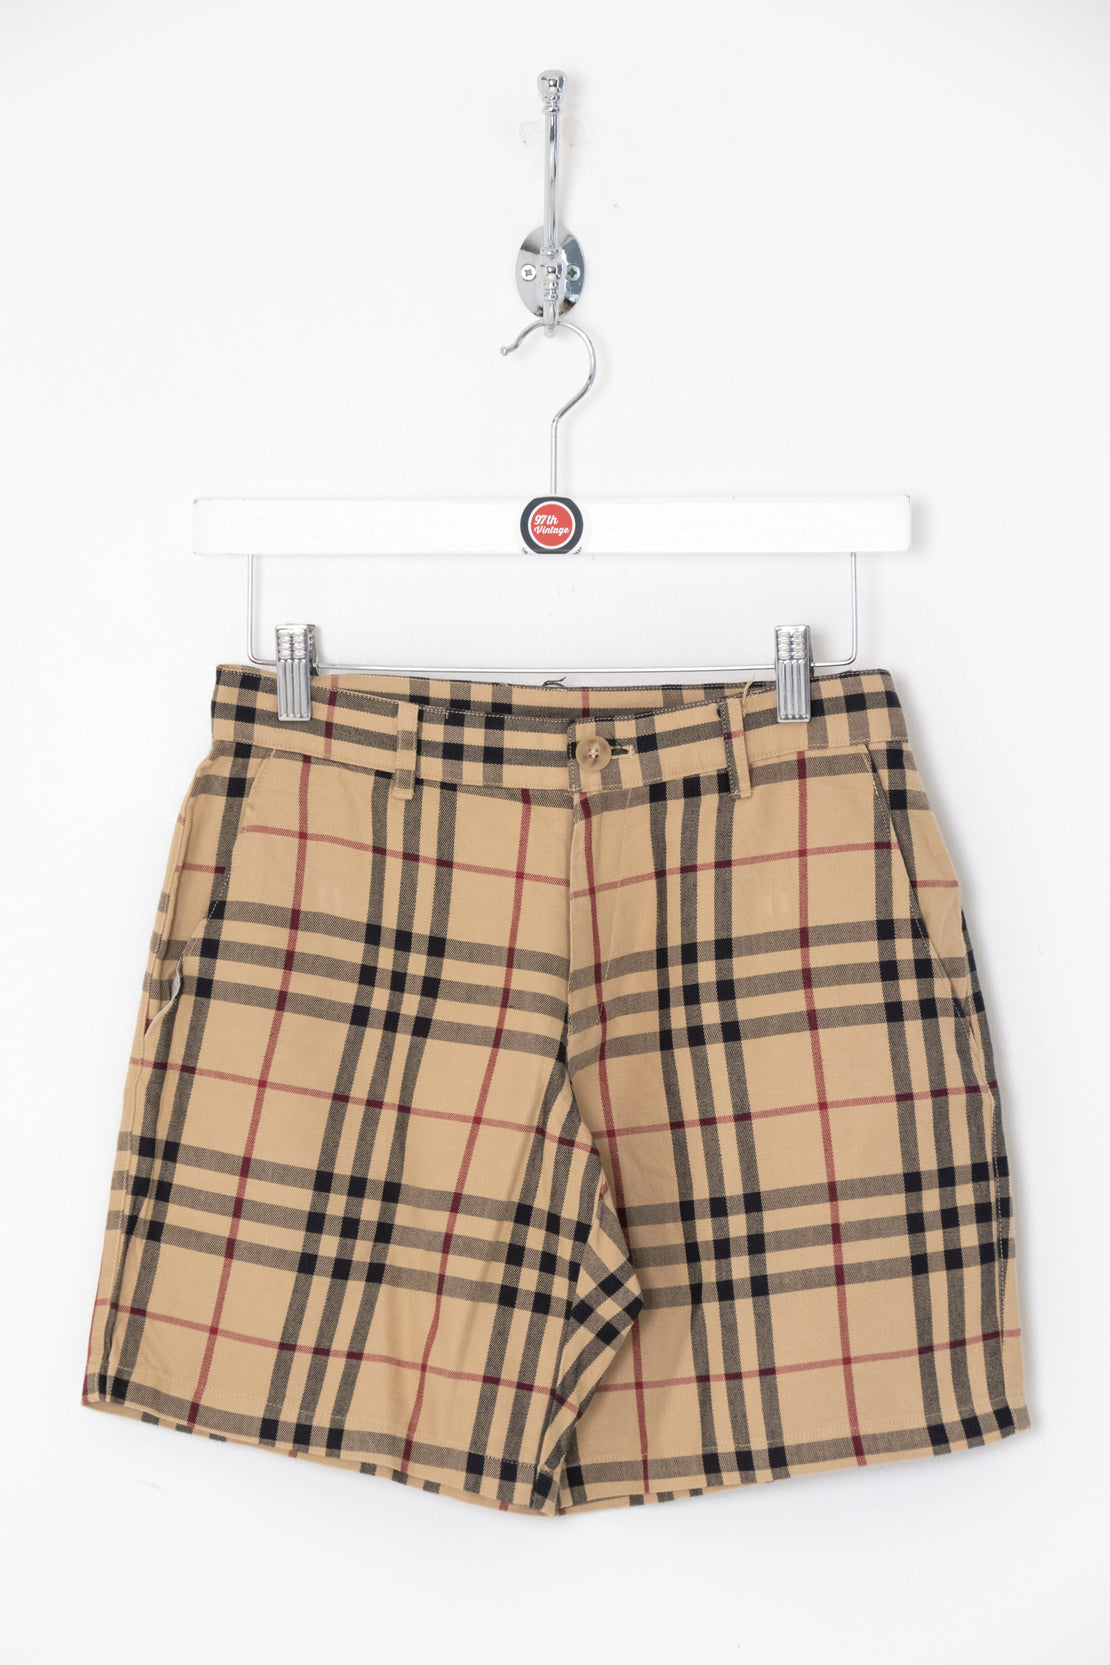 Women's Burberry Shorts (26)